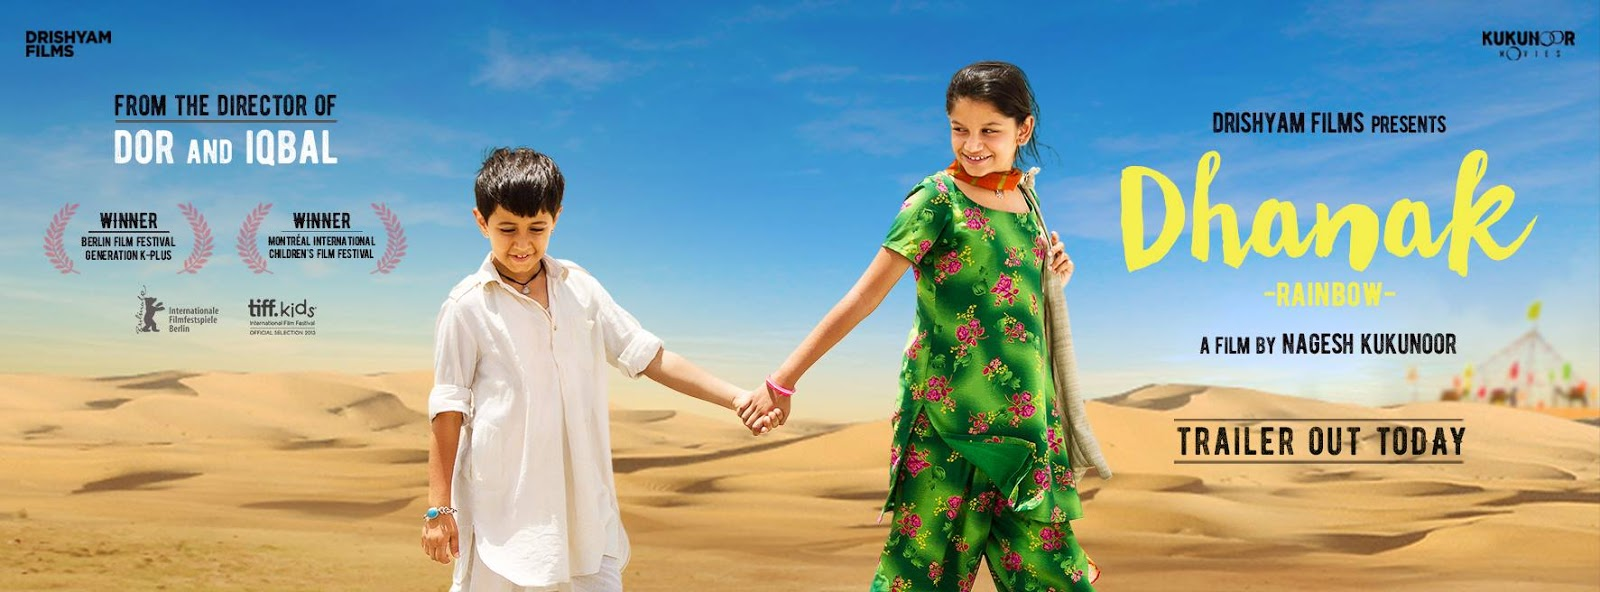 full cast and crew of bollywood movie Dhanak! wiki, Dhanak Release date edit 2016, story, poster, trailer ft Hetal Gadda, Krrish Chhabria, Vipin Sharma, Vipin Sharma